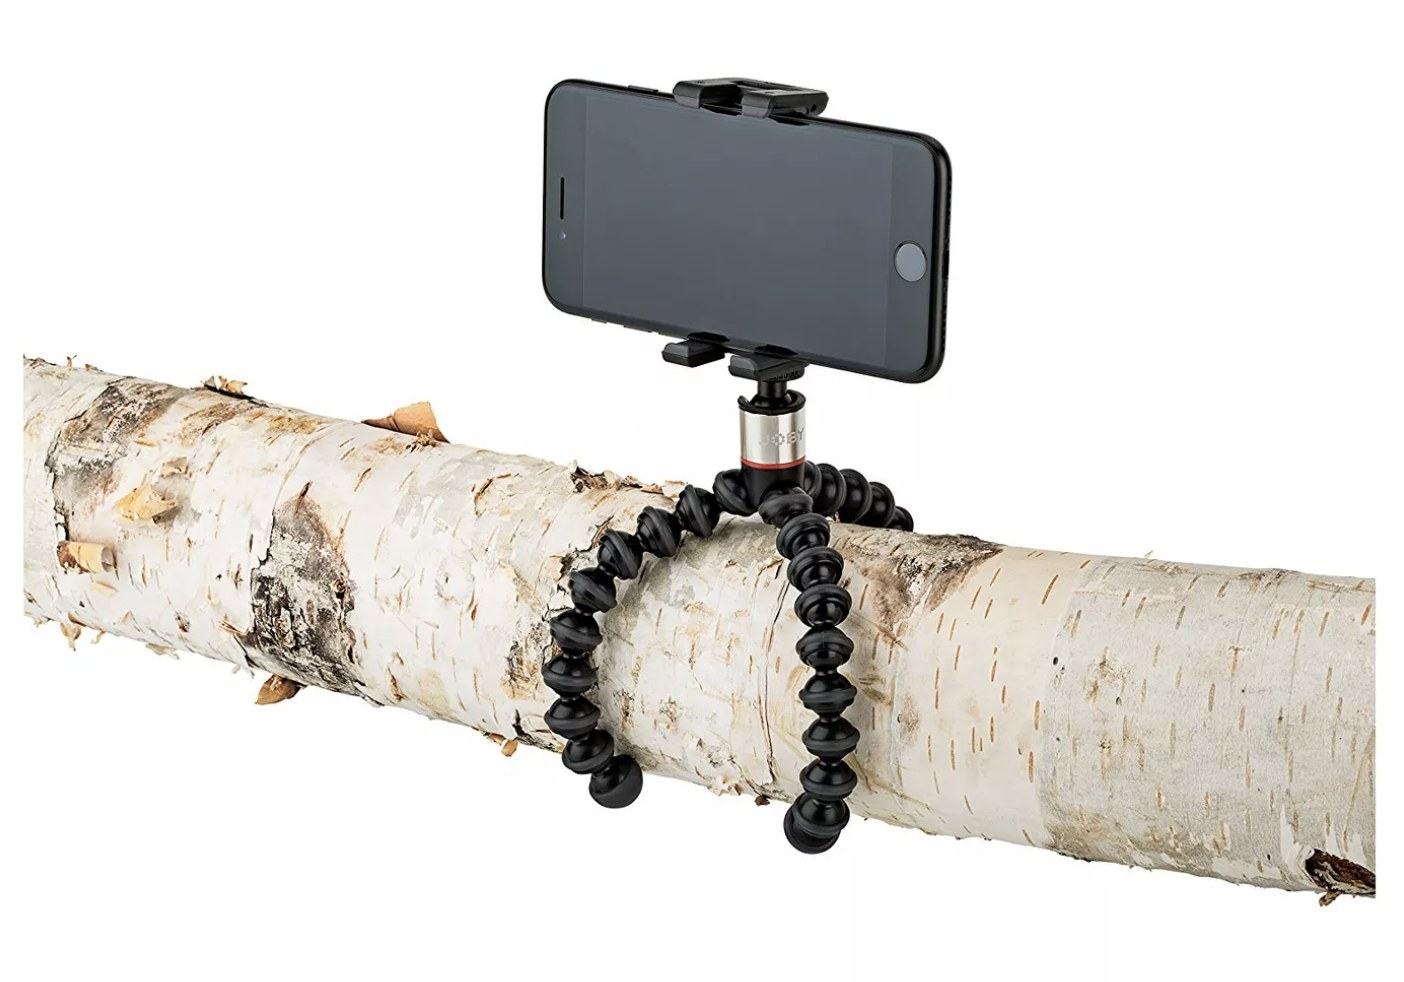 The stand with a phone on it gripping a branch